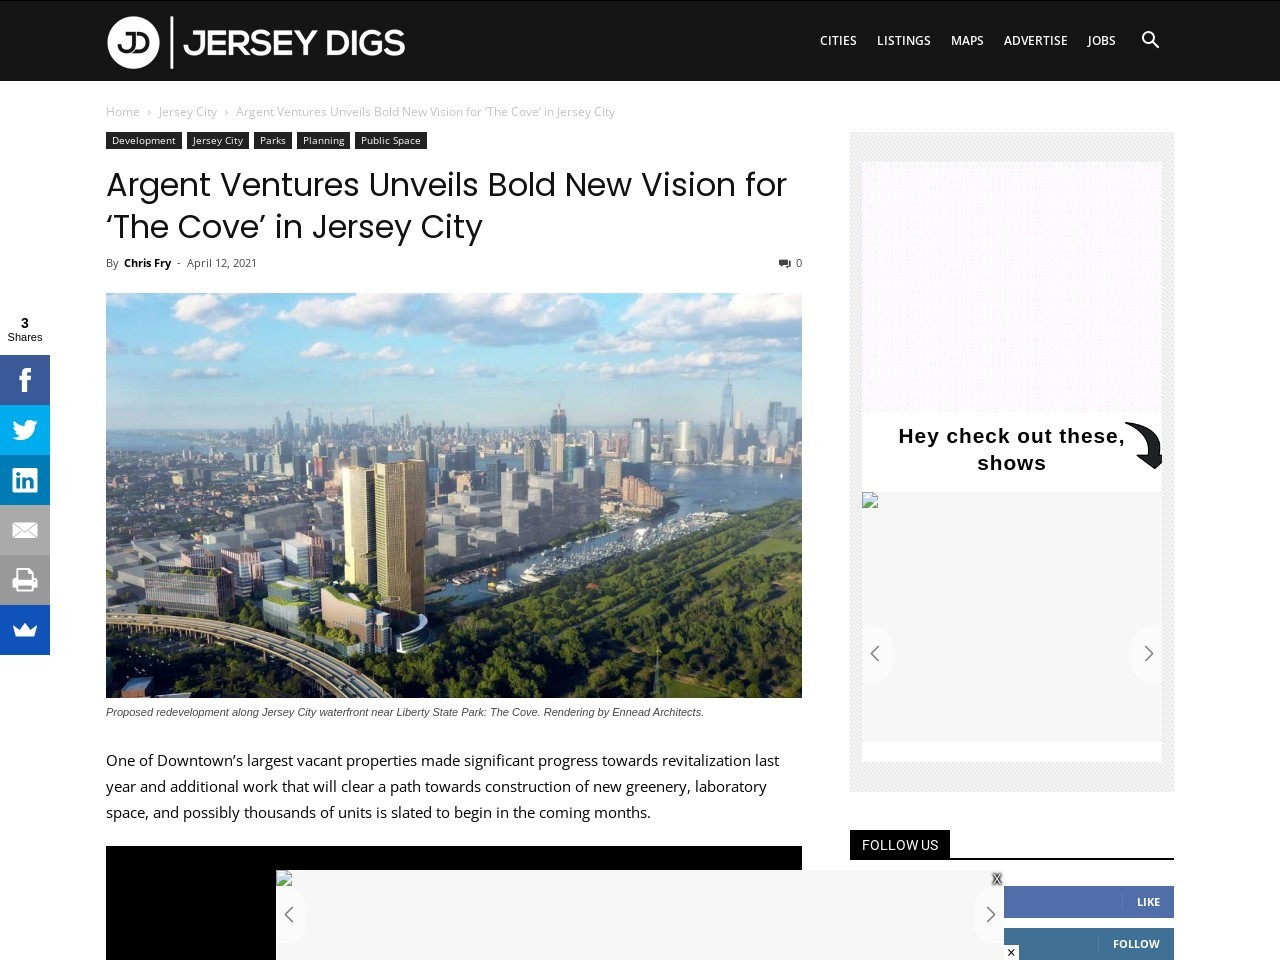 Argent Ventures Unveils Bold New Vision for 'The Cove' in Jersey City